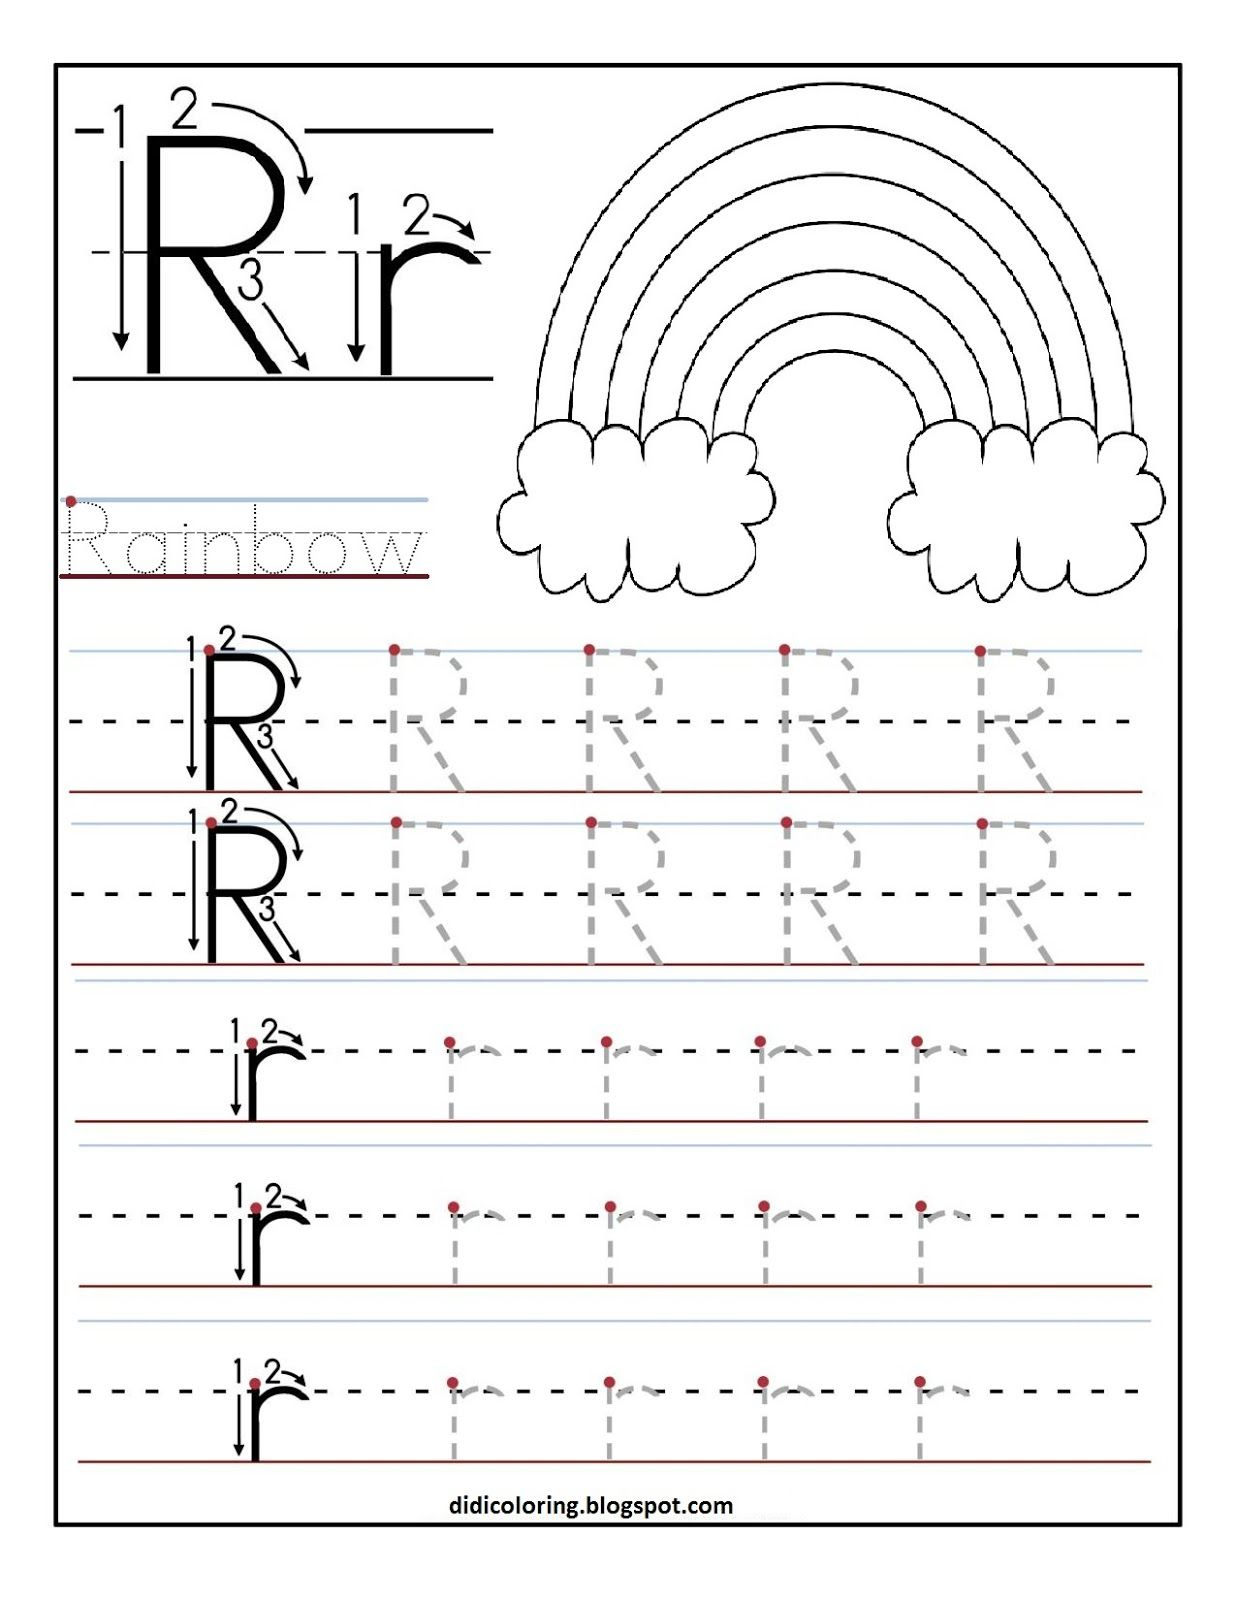 Printable Letter R Tracing Worksheets For Kids 1 236